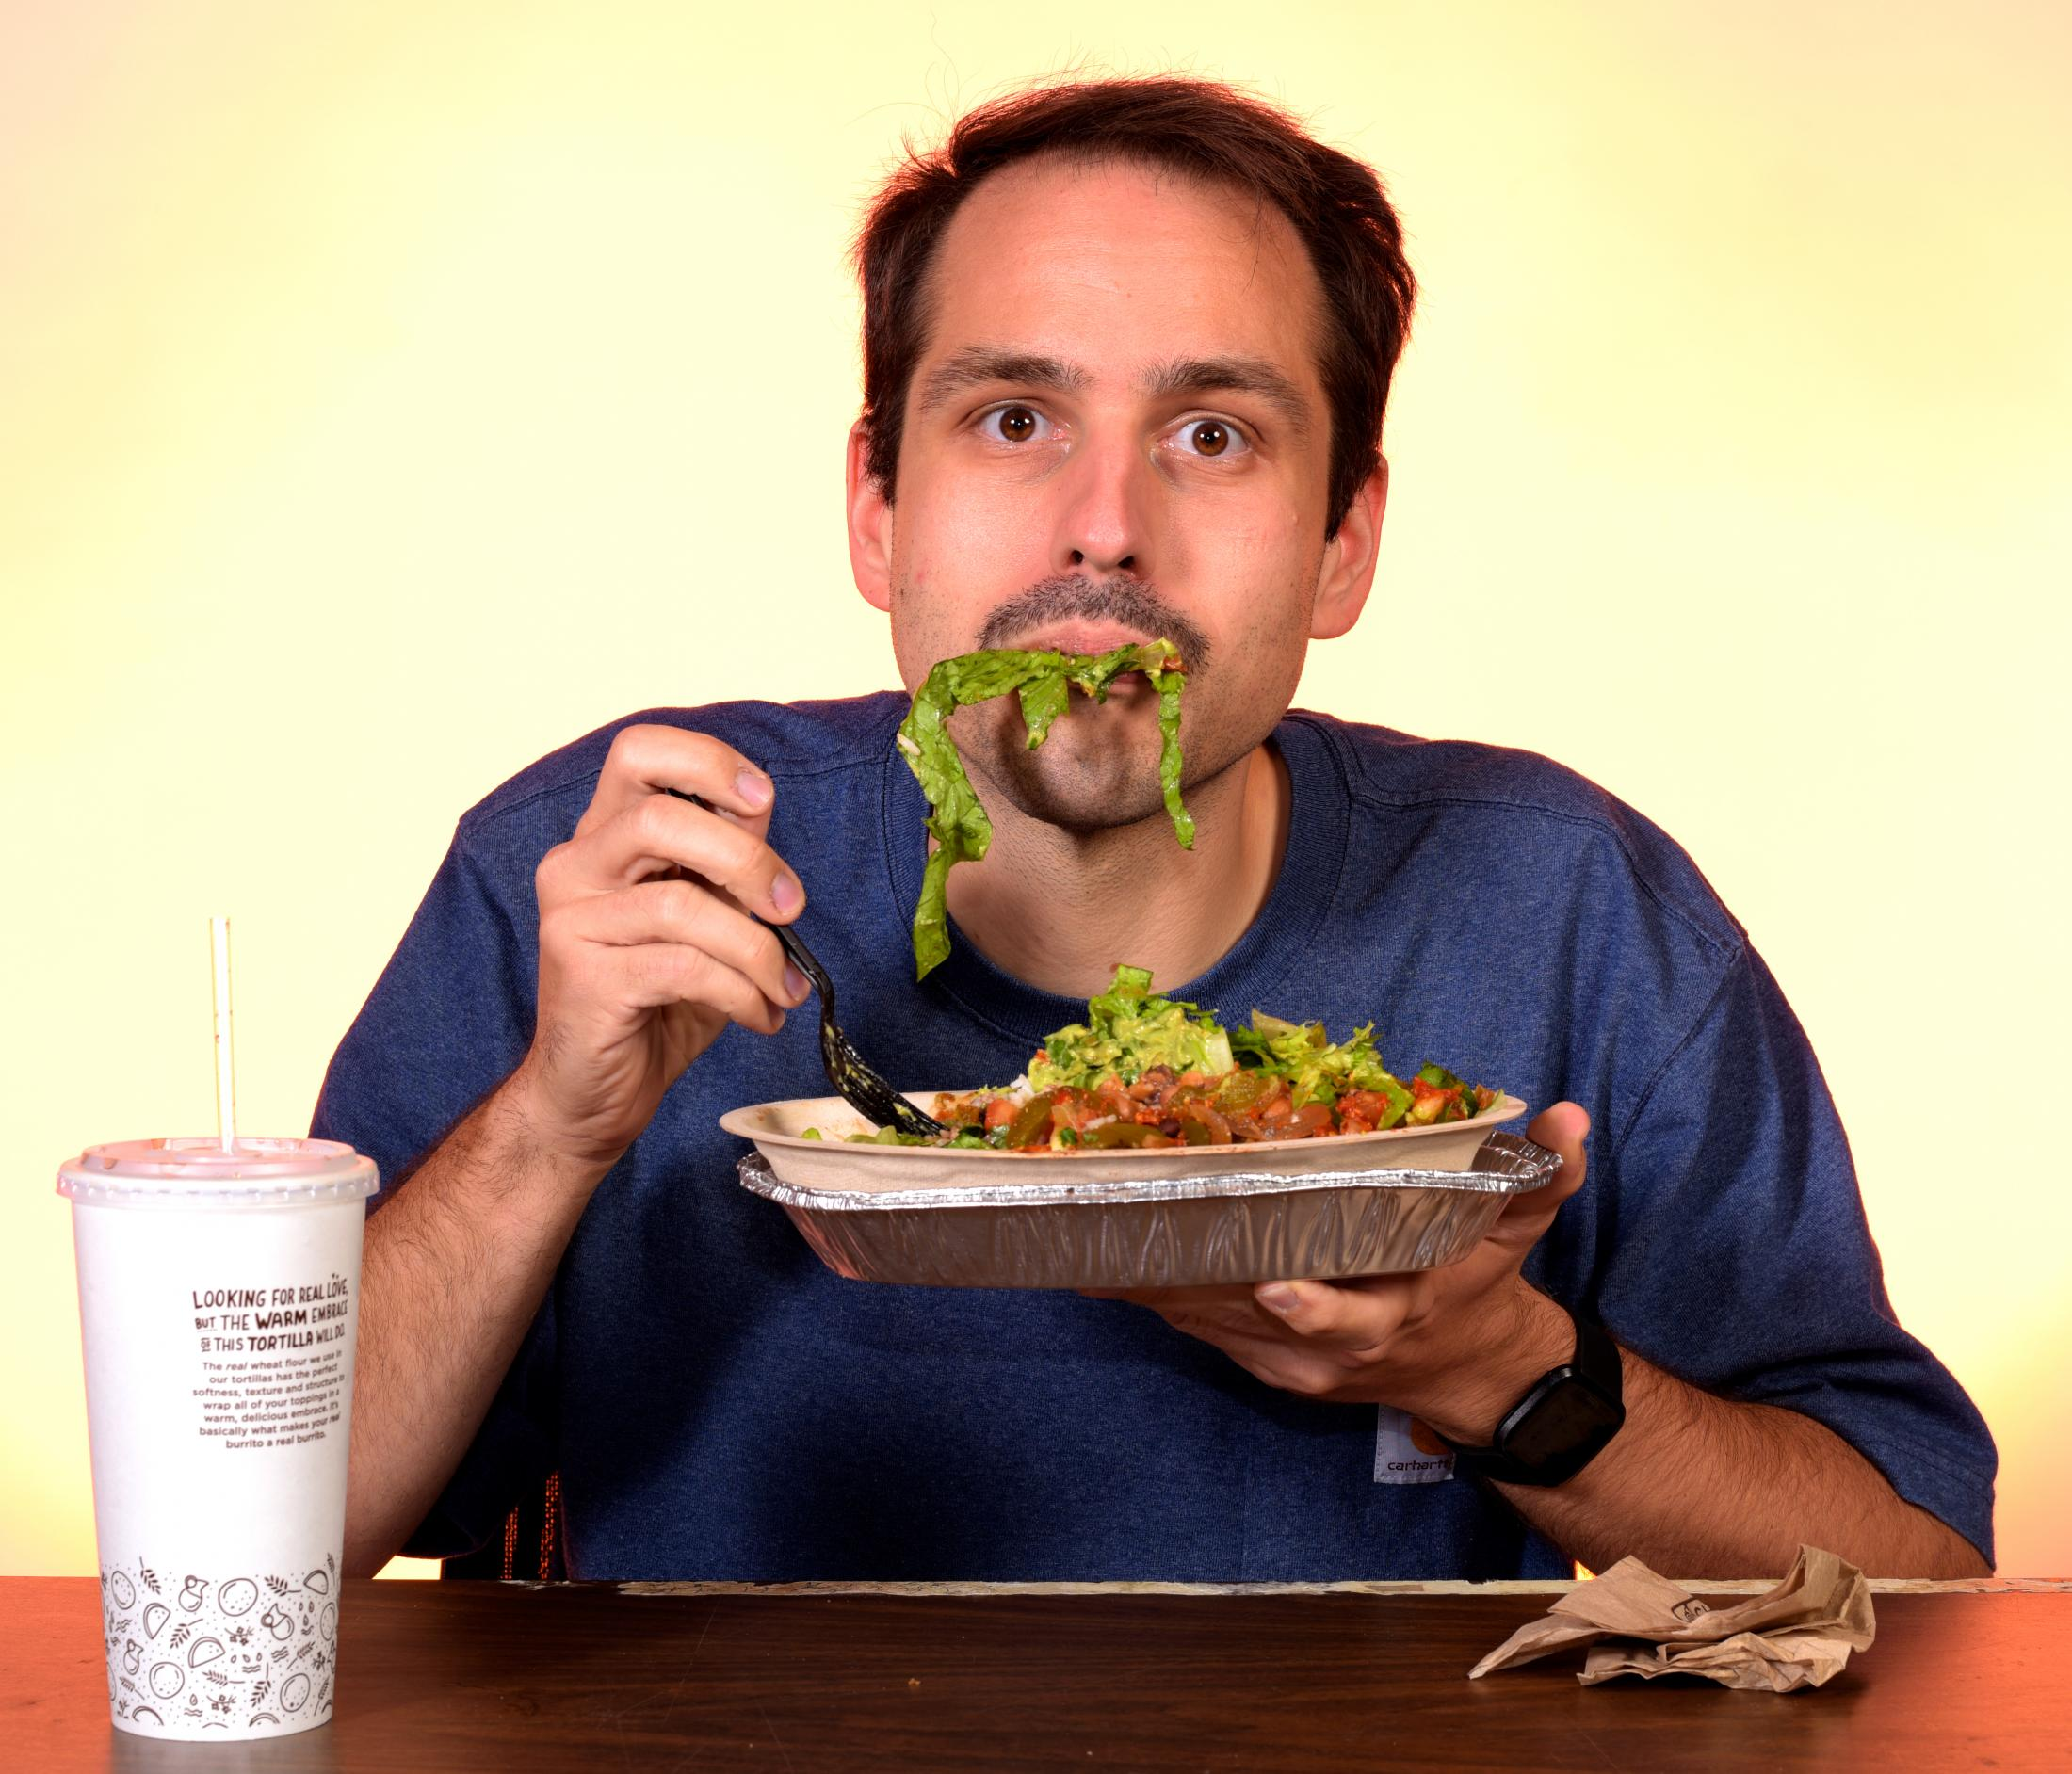 Daniel Shular eats a salad bowl from Chipotle. Shular says that Chipotle reminds him of graduate school, cheap meals and veganism.